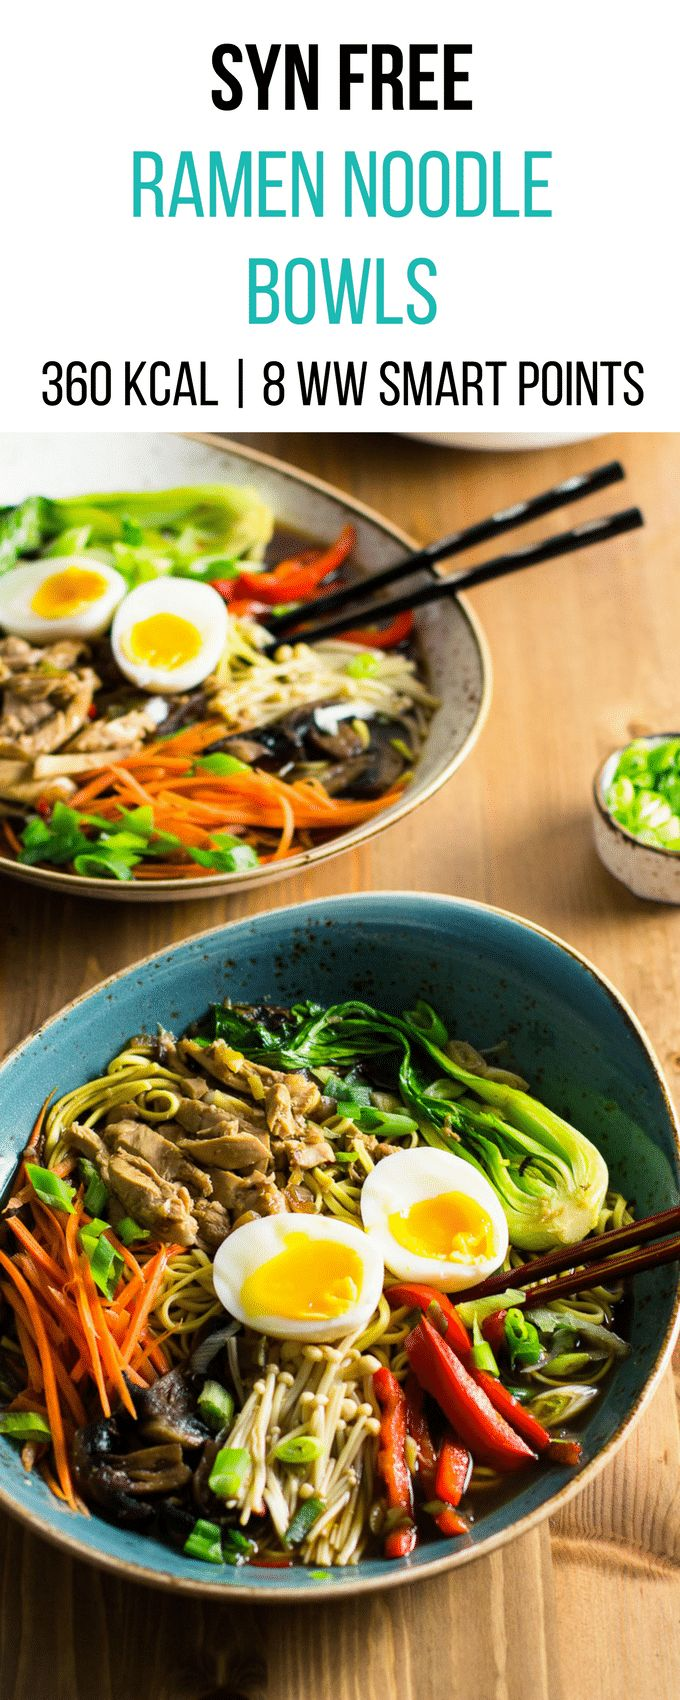 Syn Free Ramen Noodle Bowls | Slimming World | Weight Watchers | 8 Weight Watchers smart points | 360Kcal | SYN FREE